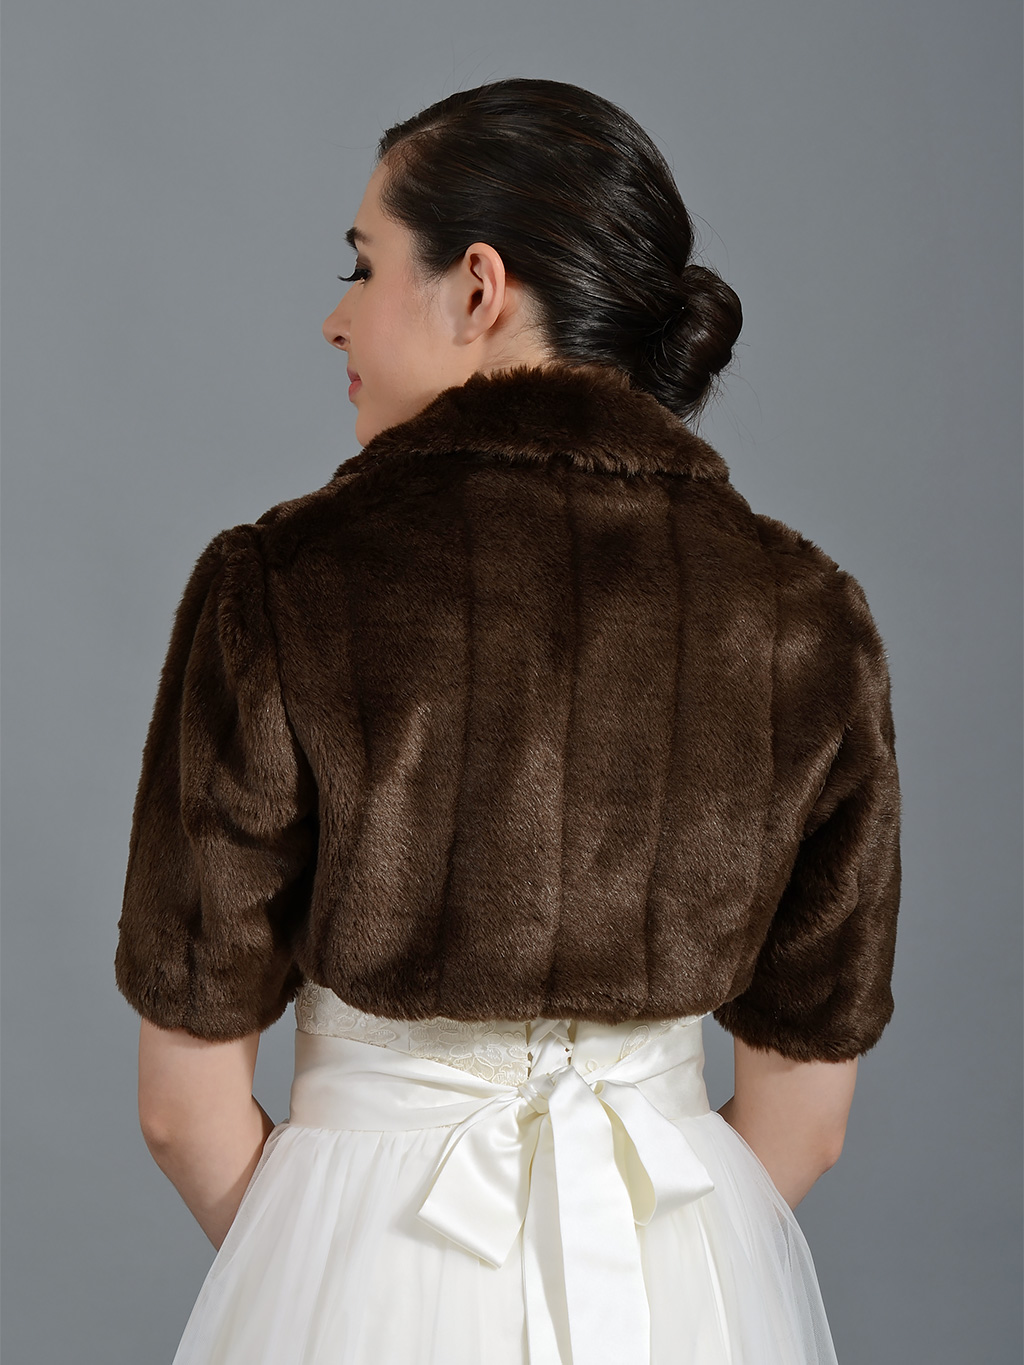 Brown Elbow Length Sleeve Faux Fur Jacket Shrug Bolero